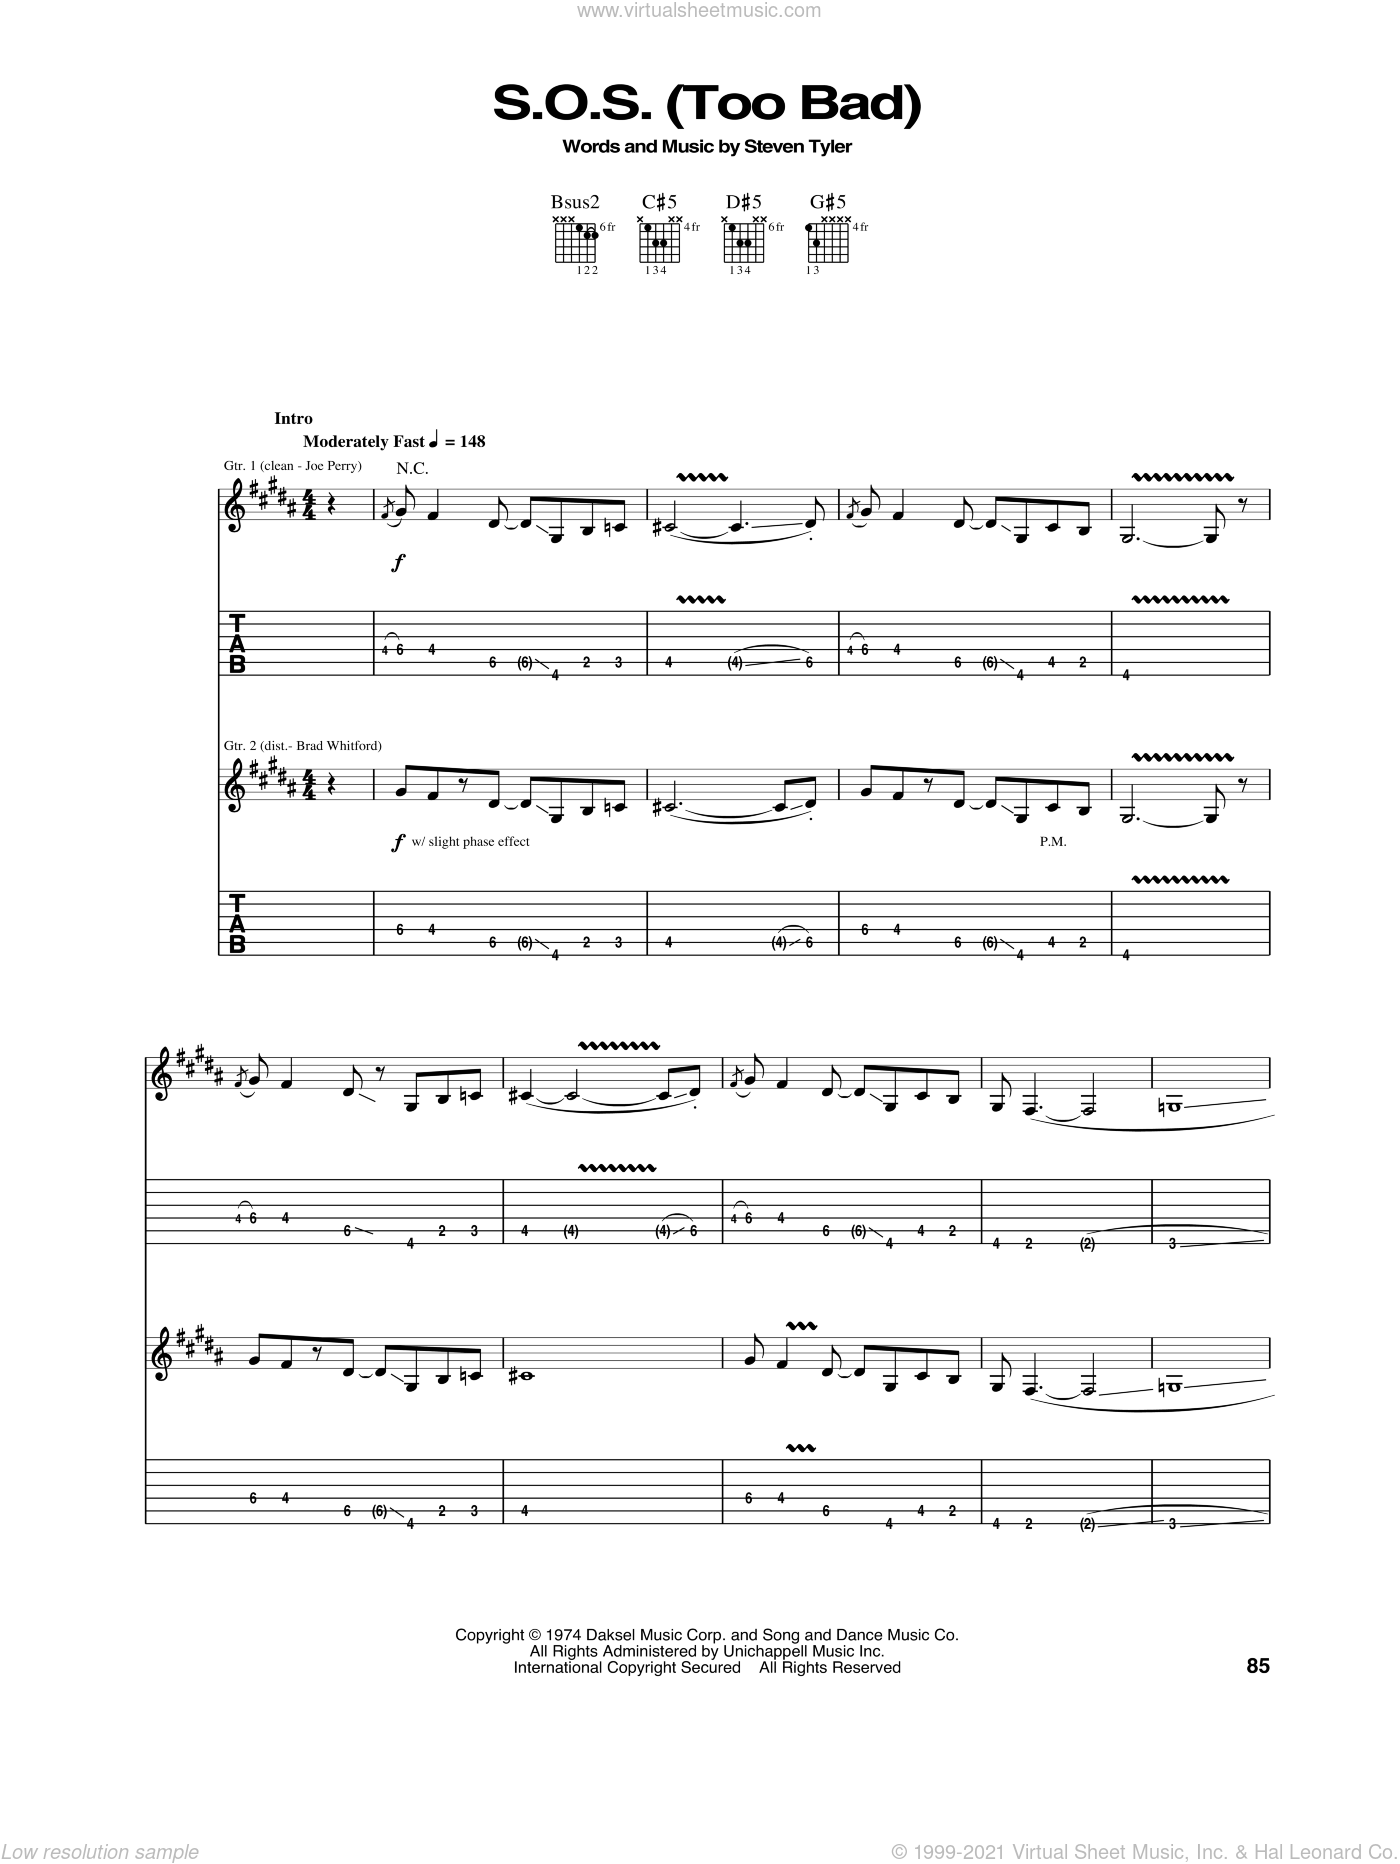 S.O.S. (Too Bad) sheet music for guitar (tablature) by Steven Tyler and Aerosmith. Score Image Preview.